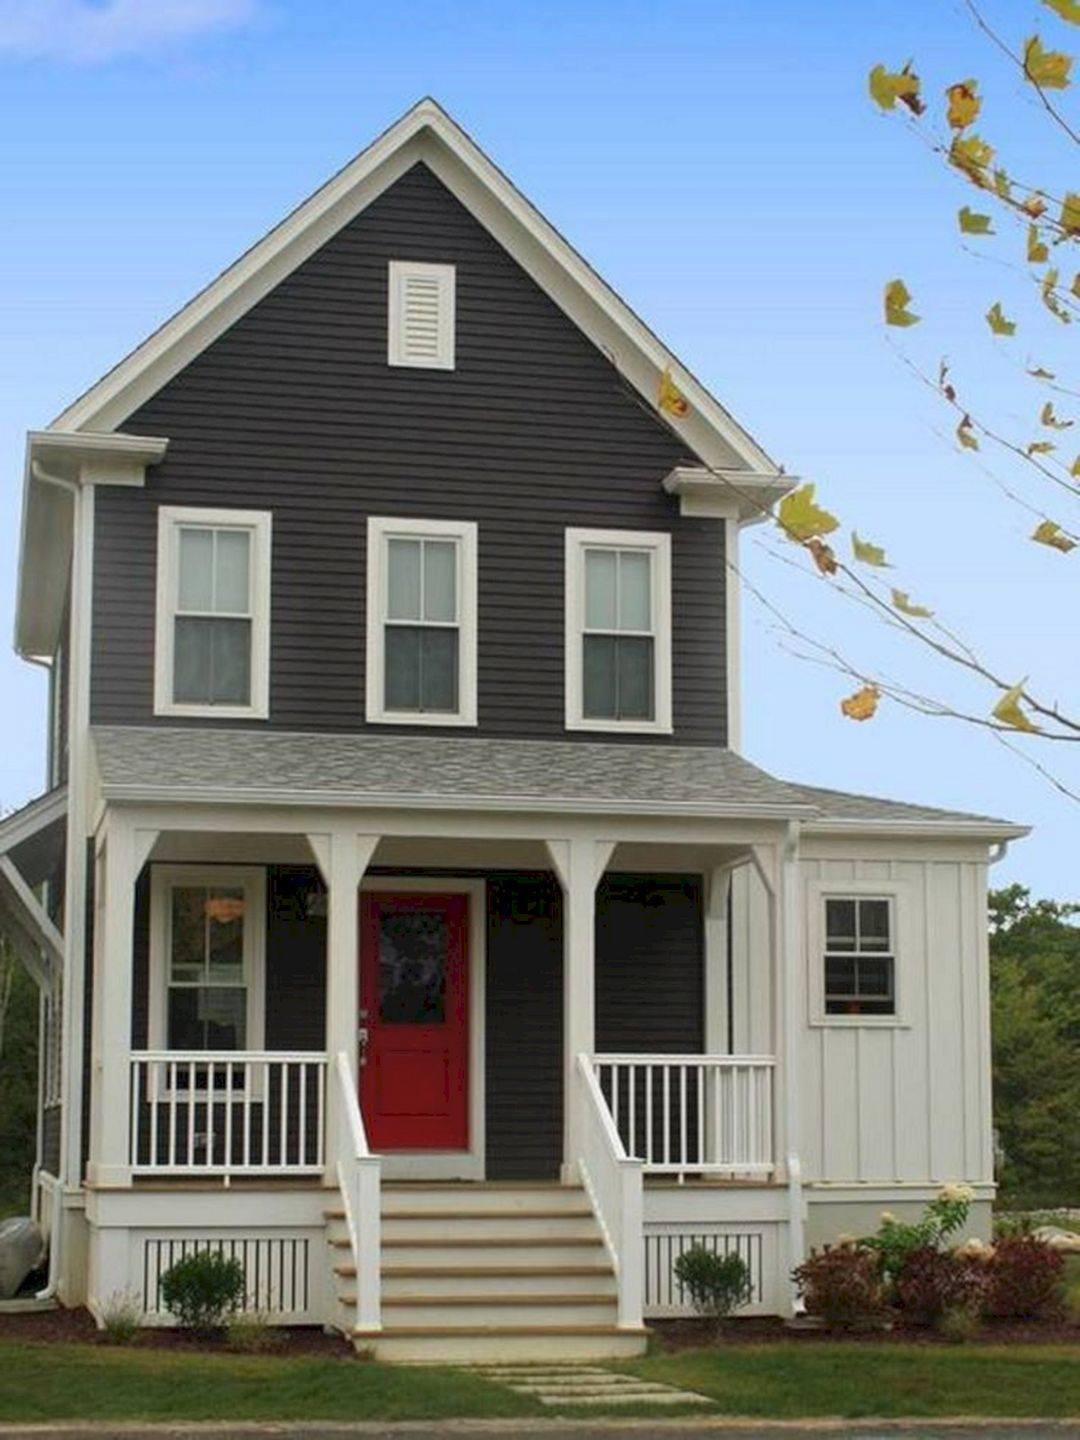 Top 20 Exterior House Paint Color Schemes For Home Looks More Beautiful Freshouz Com Gray House Exterior House Paint Exterior Exterior Paint Colors For House